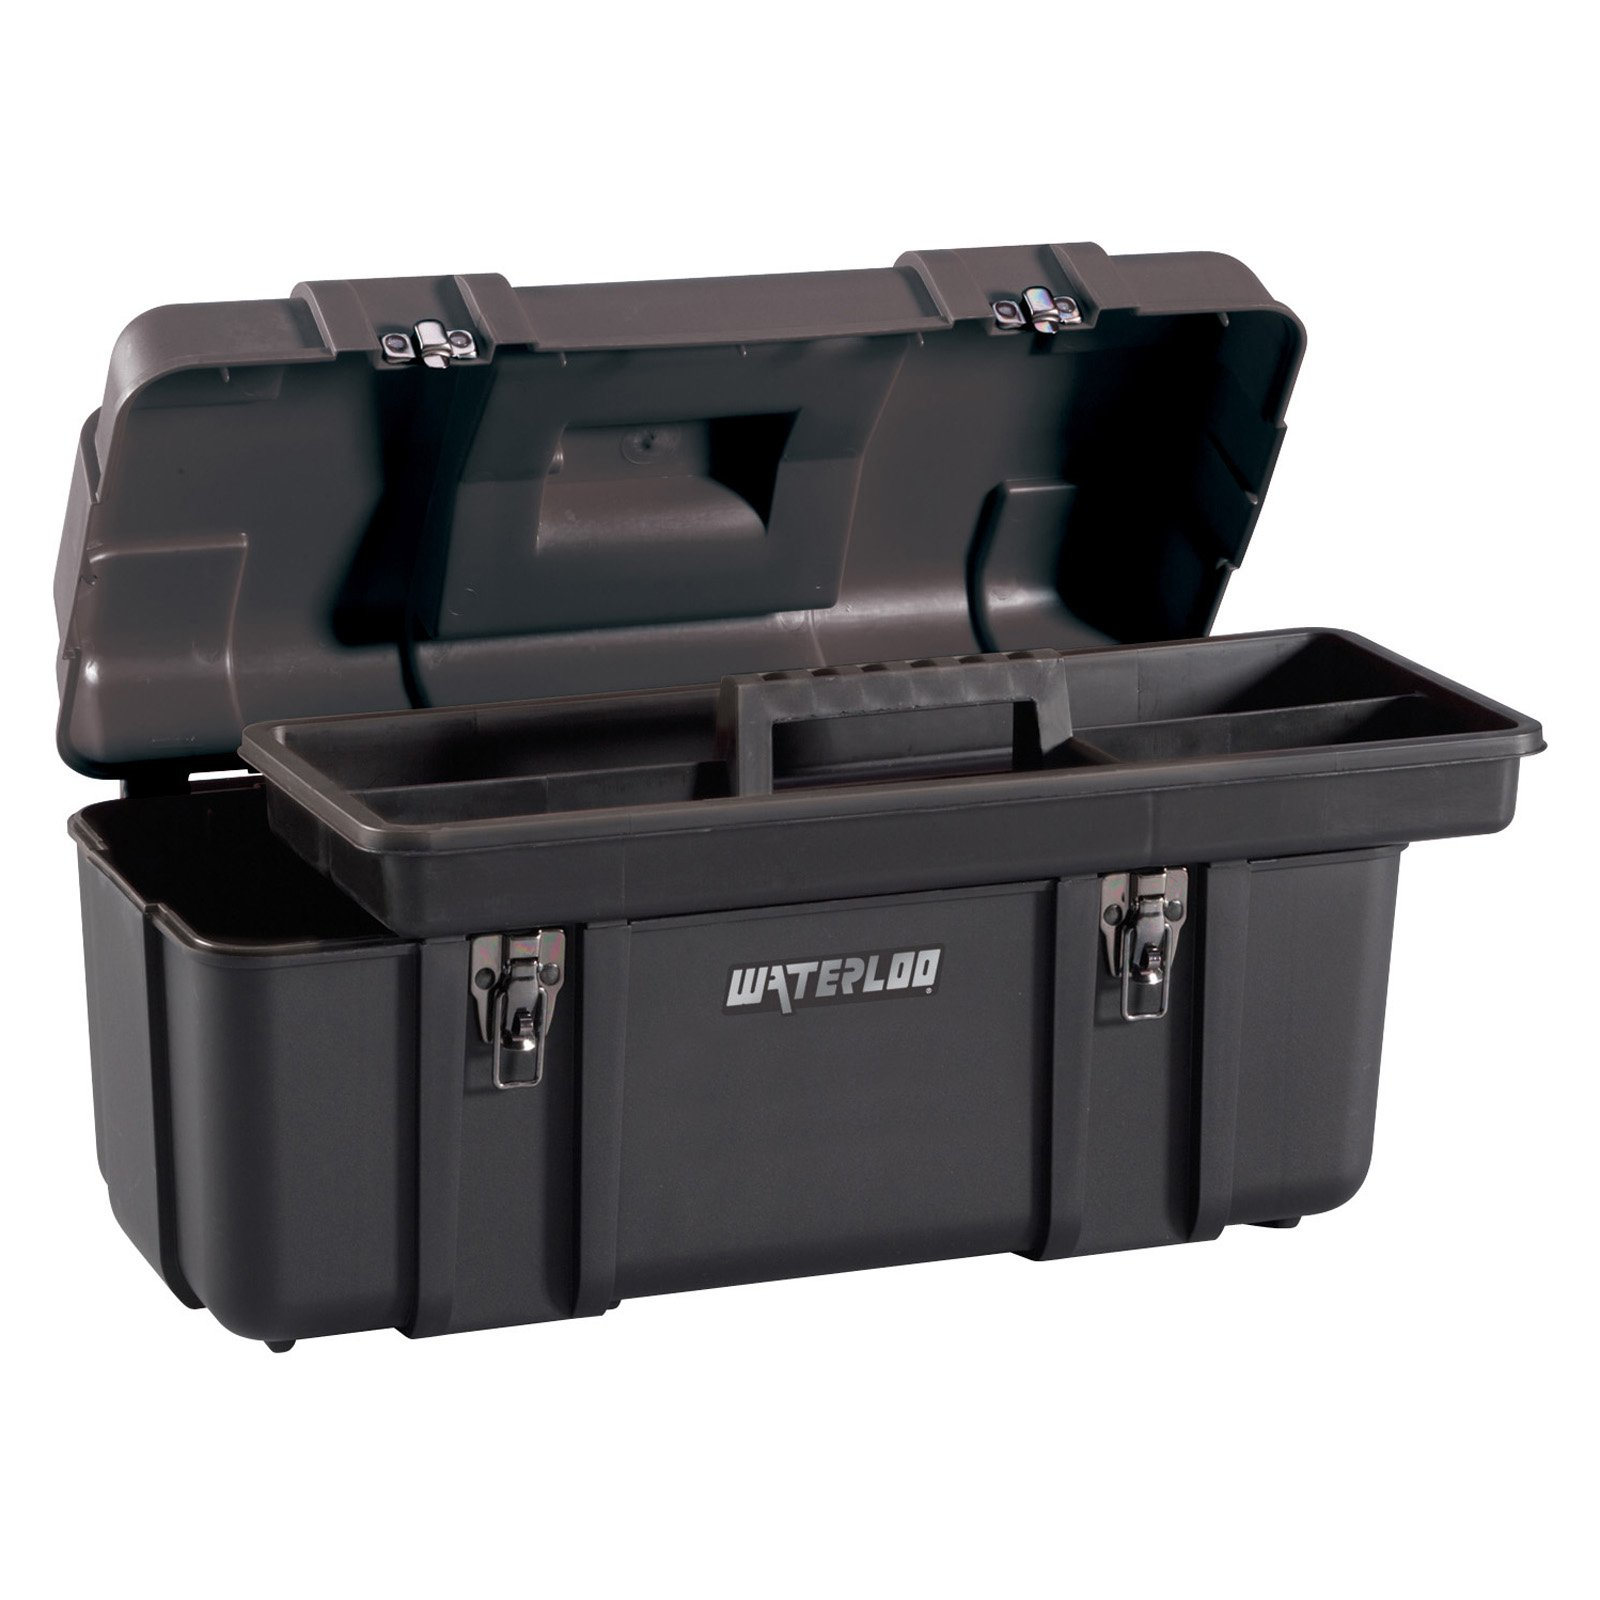 Waterloo 20 in. Plastic Tool Box